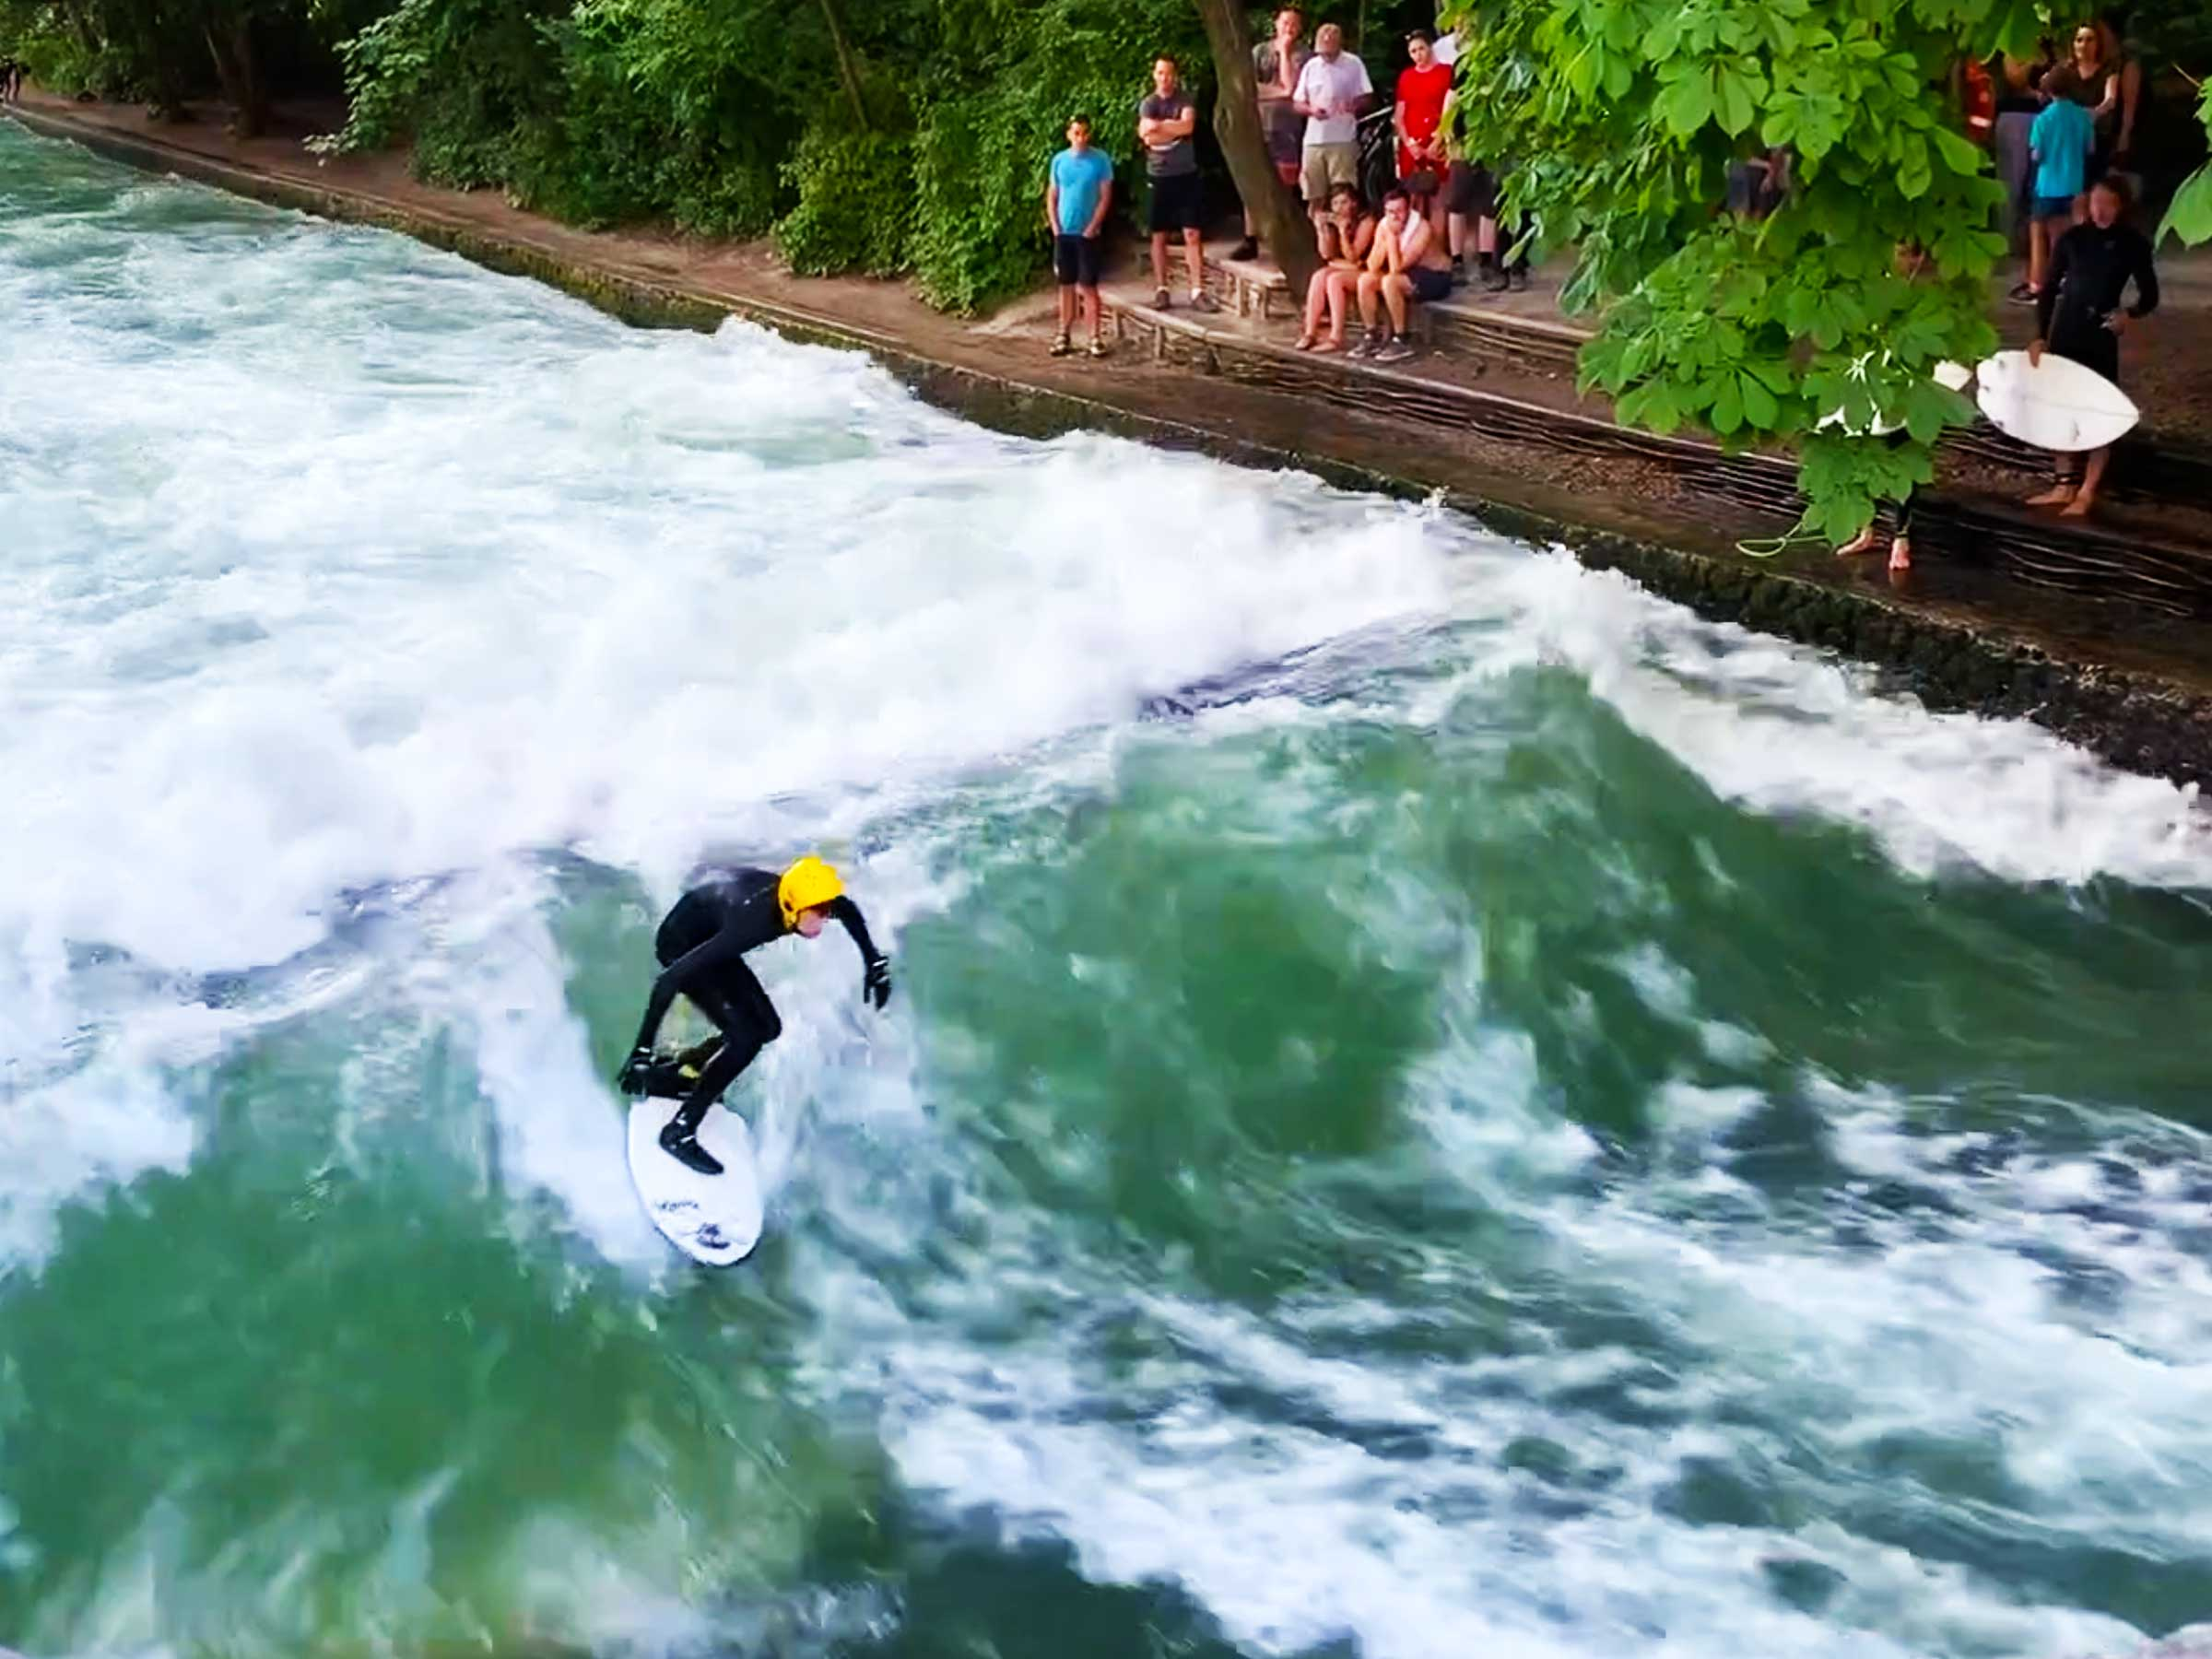 Surfing in Munich, Germany | German River Surfering | Dr Steven A Martin | Learning Adventures | Europe